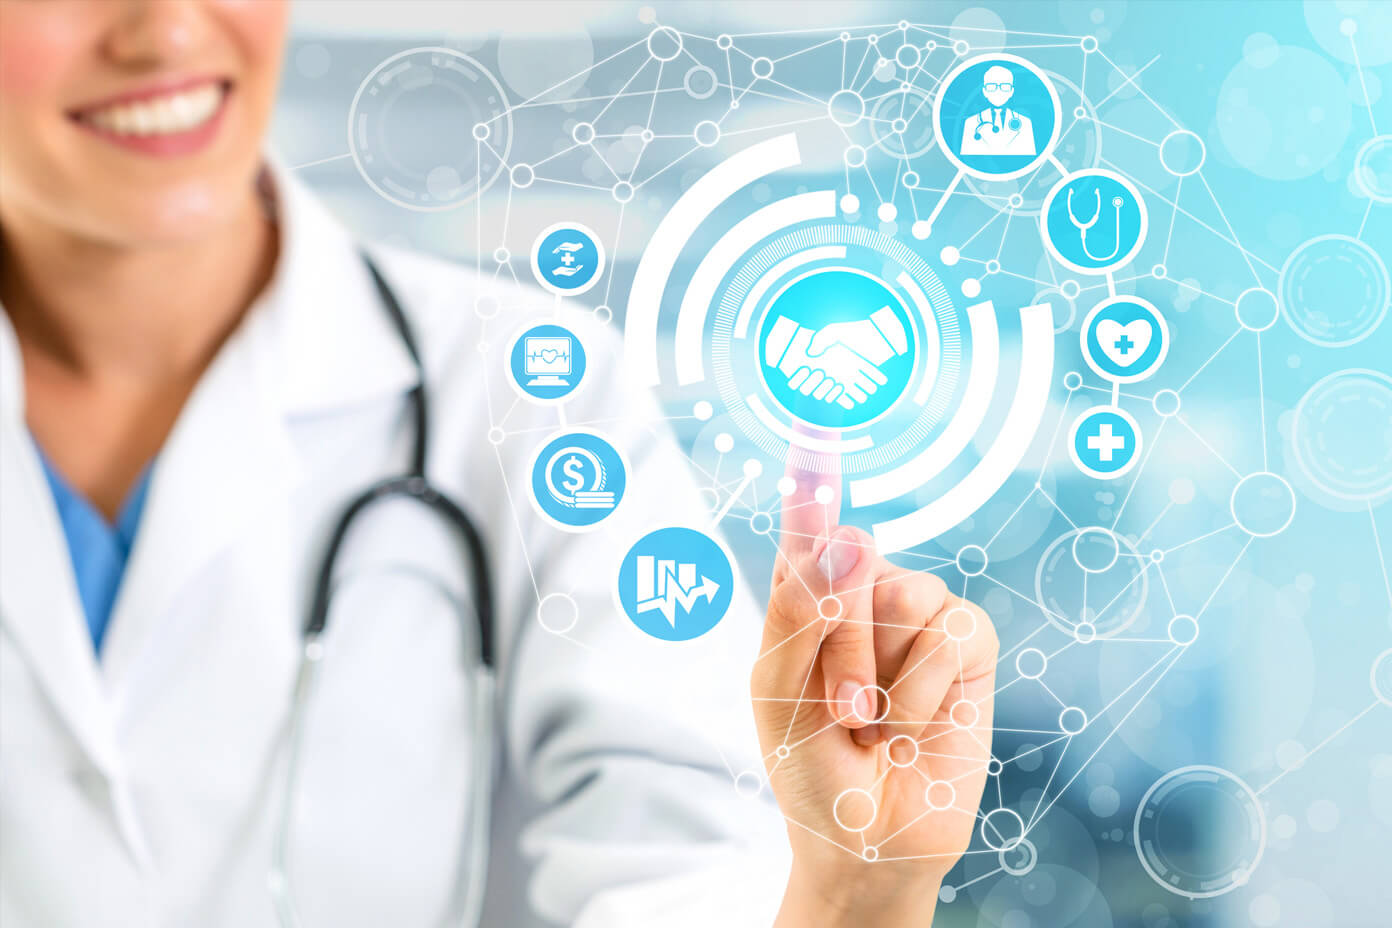 7 Core Features to look for When Choosing a Pharmacy Management System